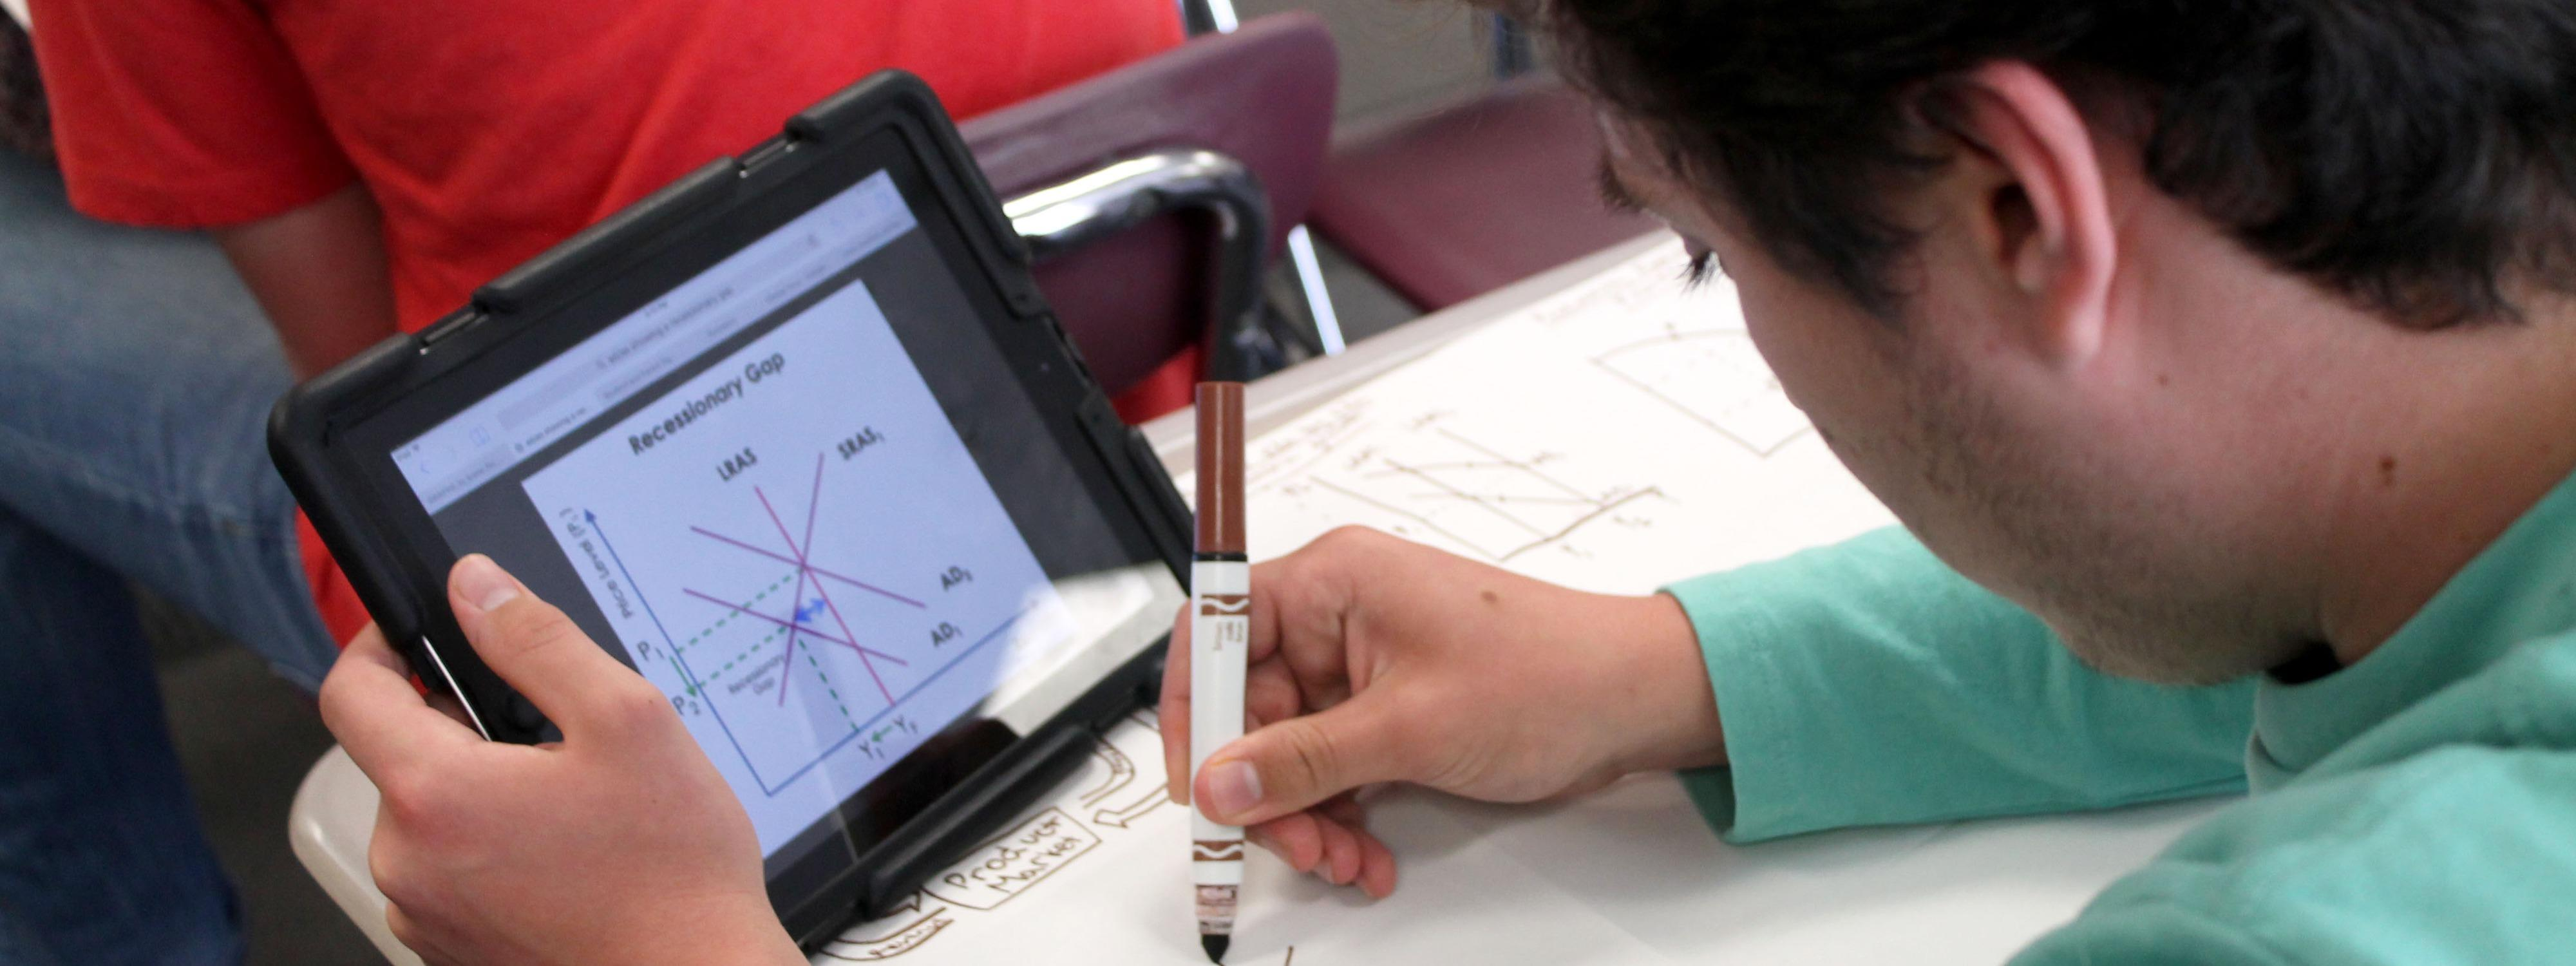 student using ipad and drawing a math diagram